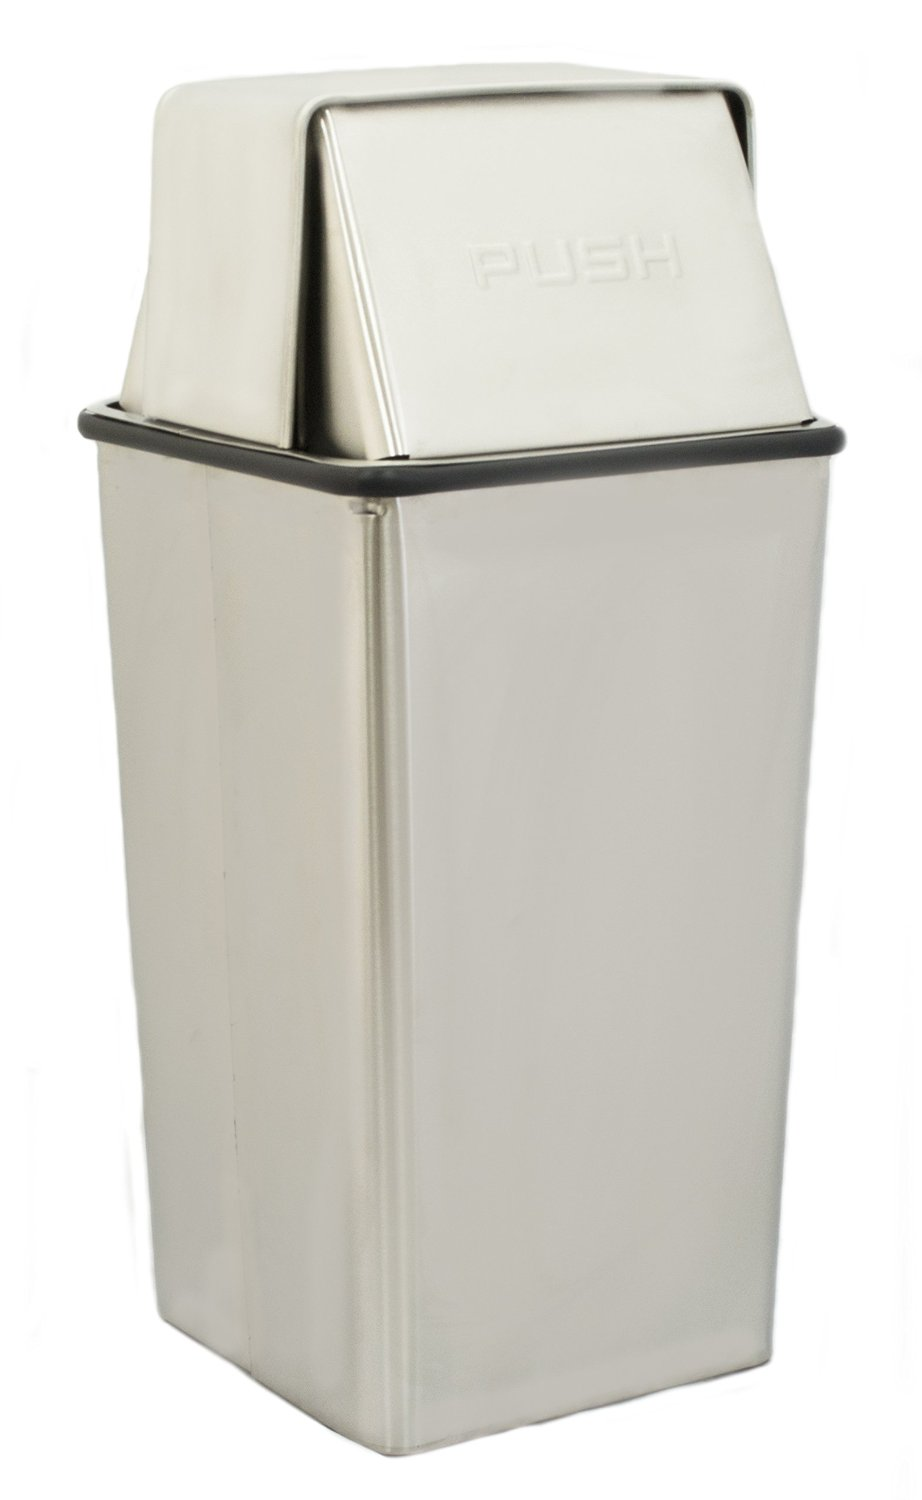 Small, Stainless Steel Hamper And Push Top